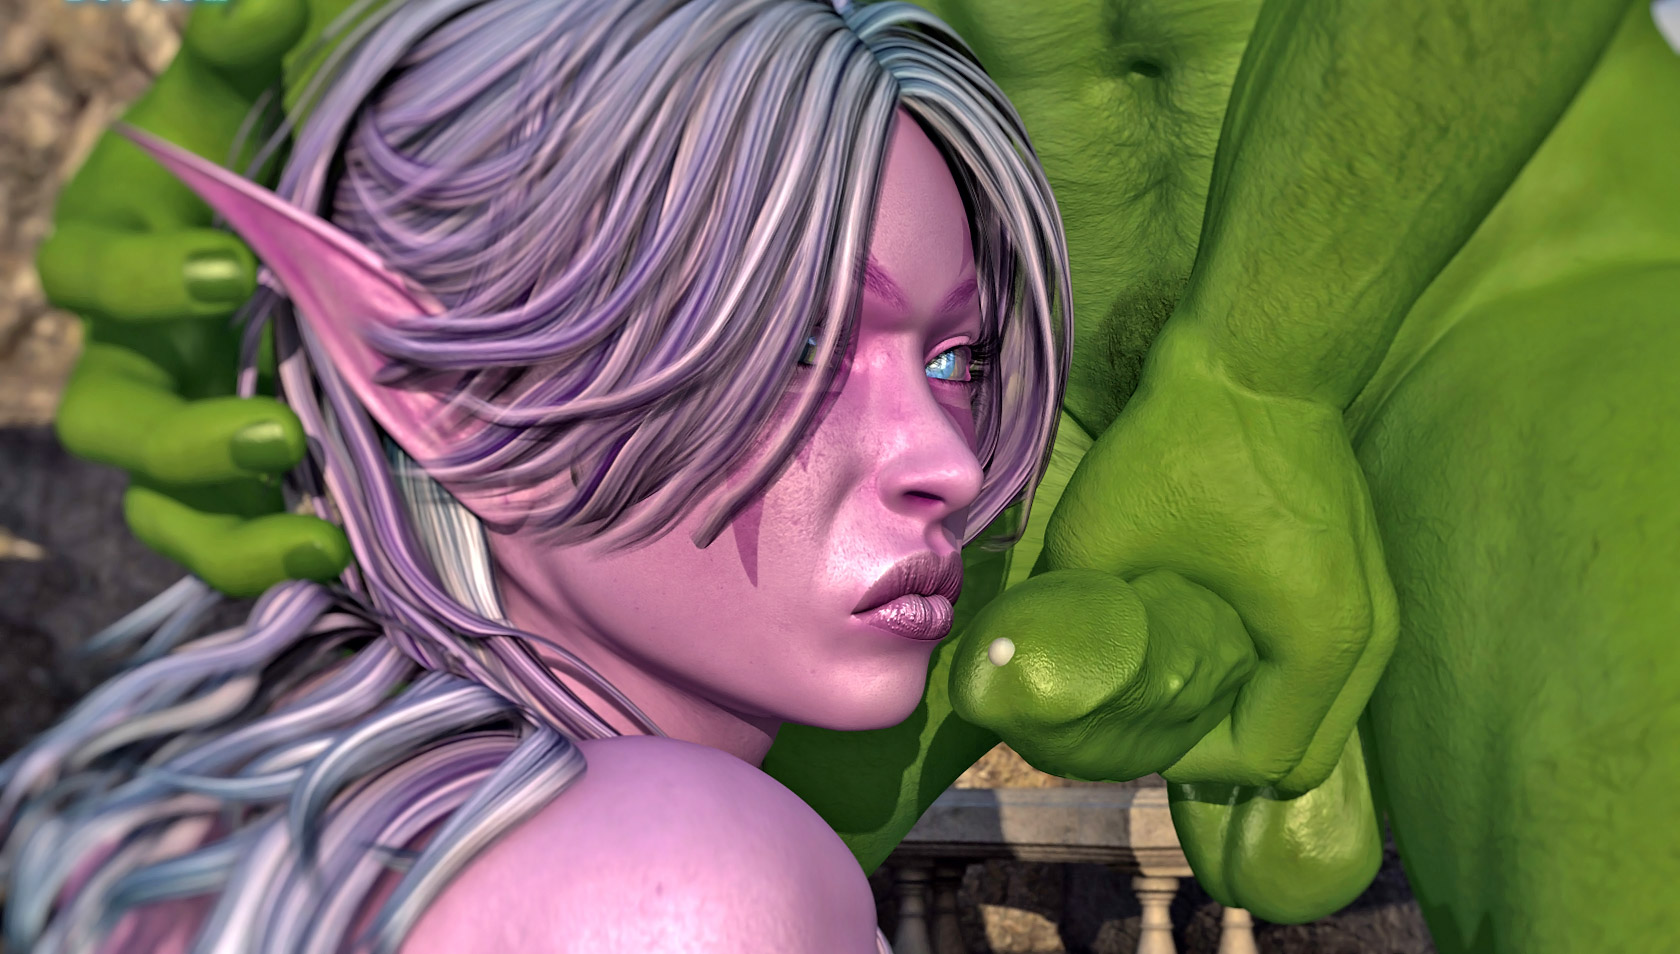 World of warcraft poen nigh elf and  erotic extreme girls